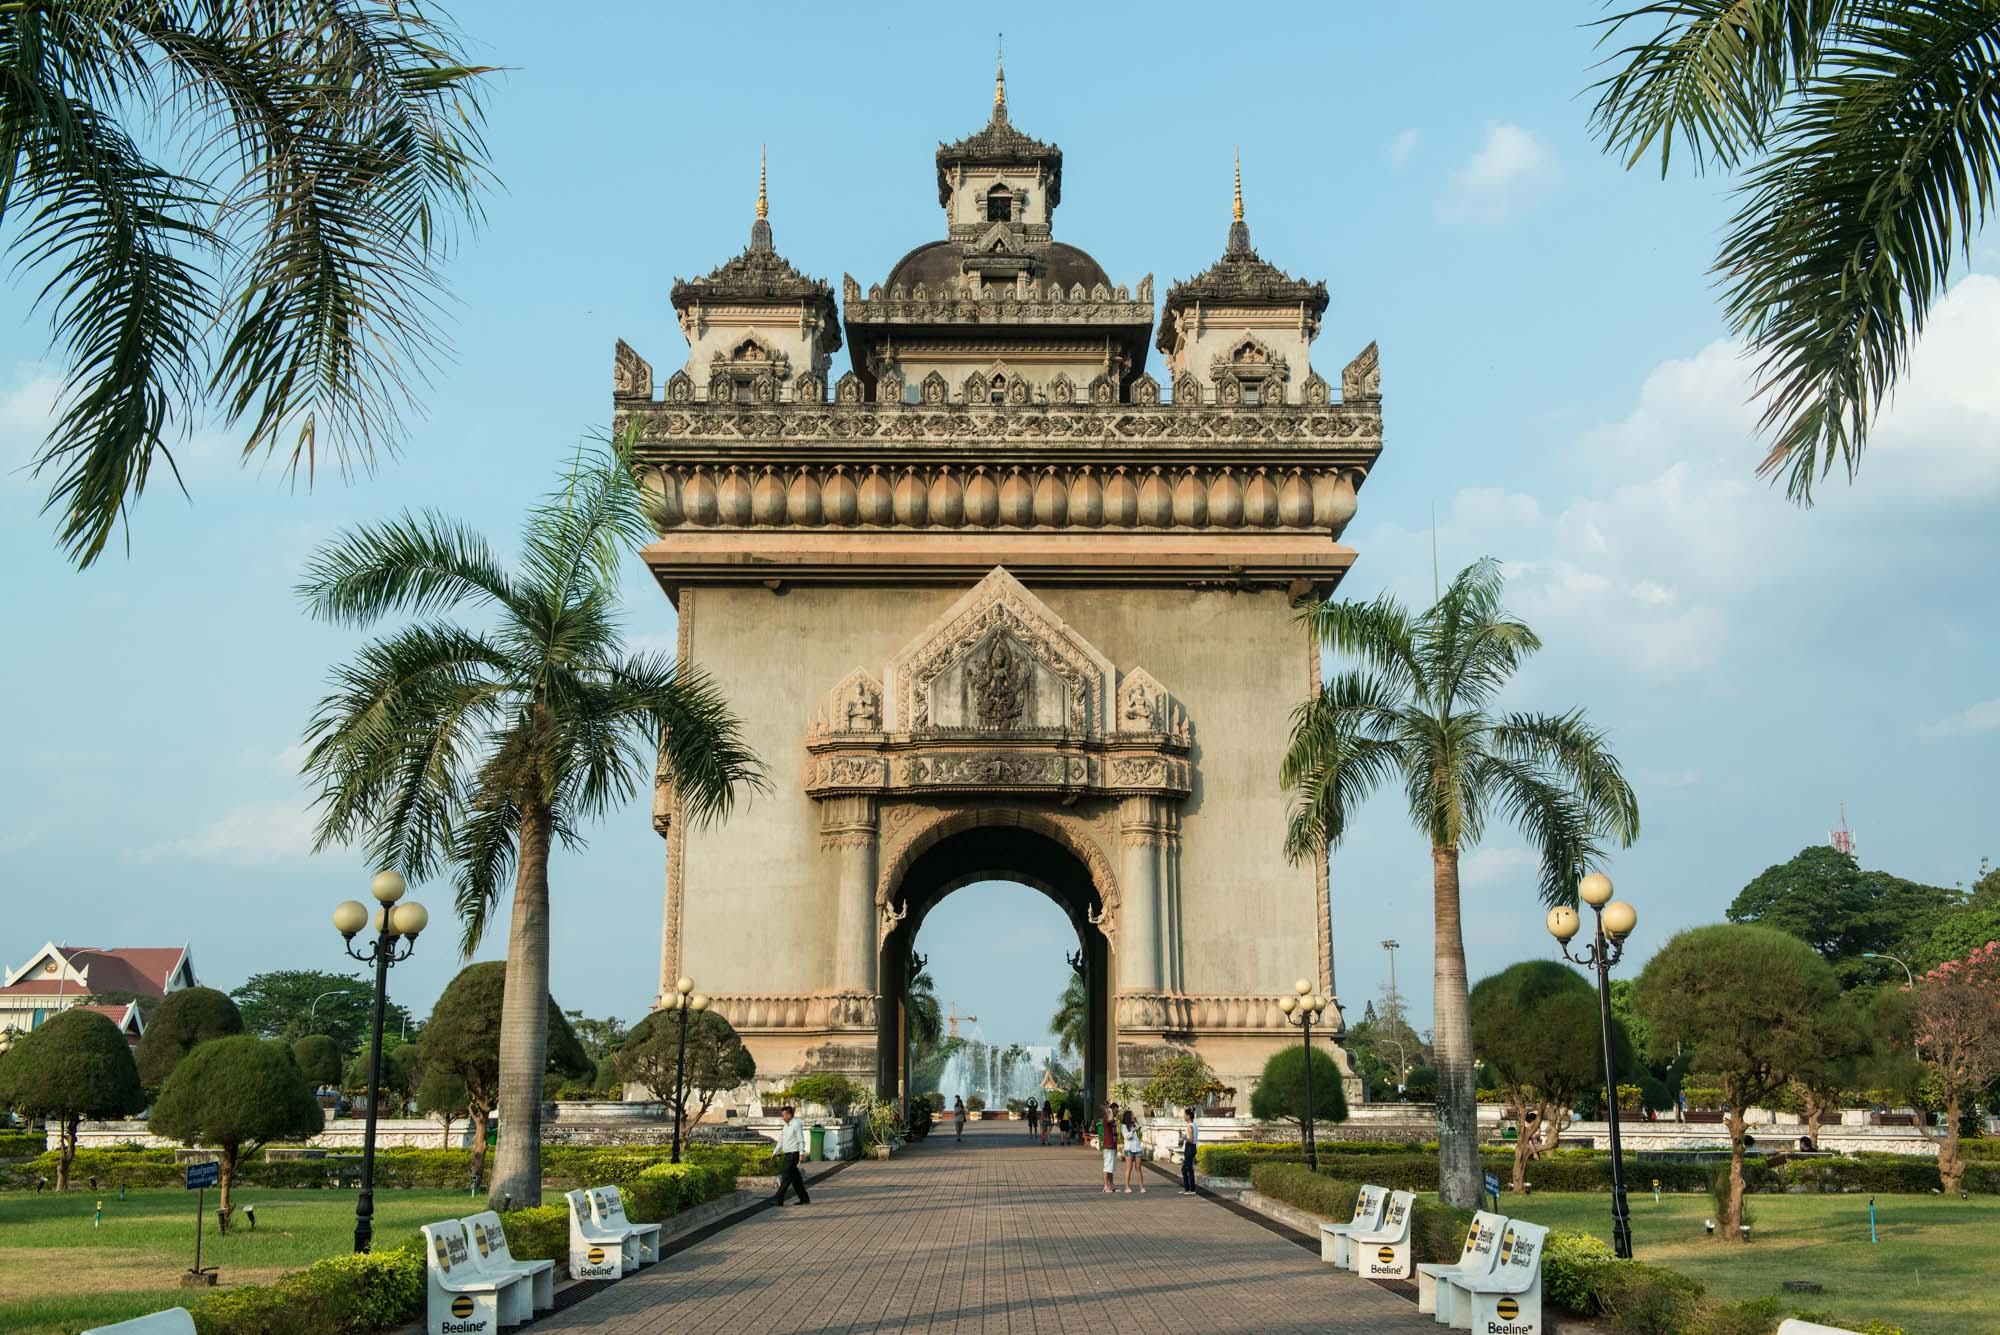 Patuxai, one of Vientiane, Laos' most important landmarks is dedicated to those who fought for independence from France